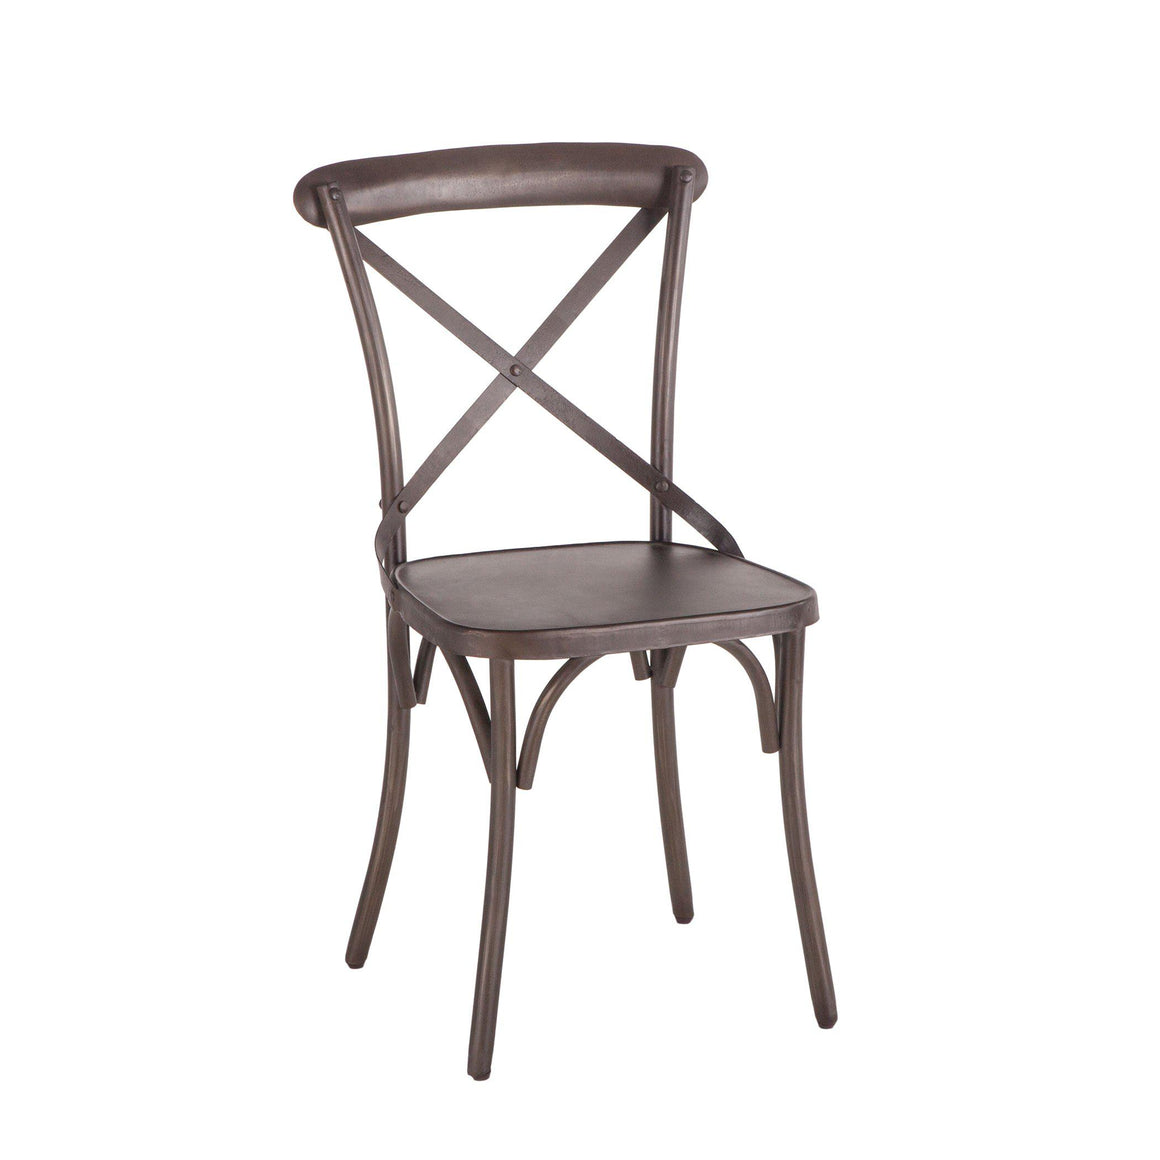 Anderson Industrial Iron Dining Chair